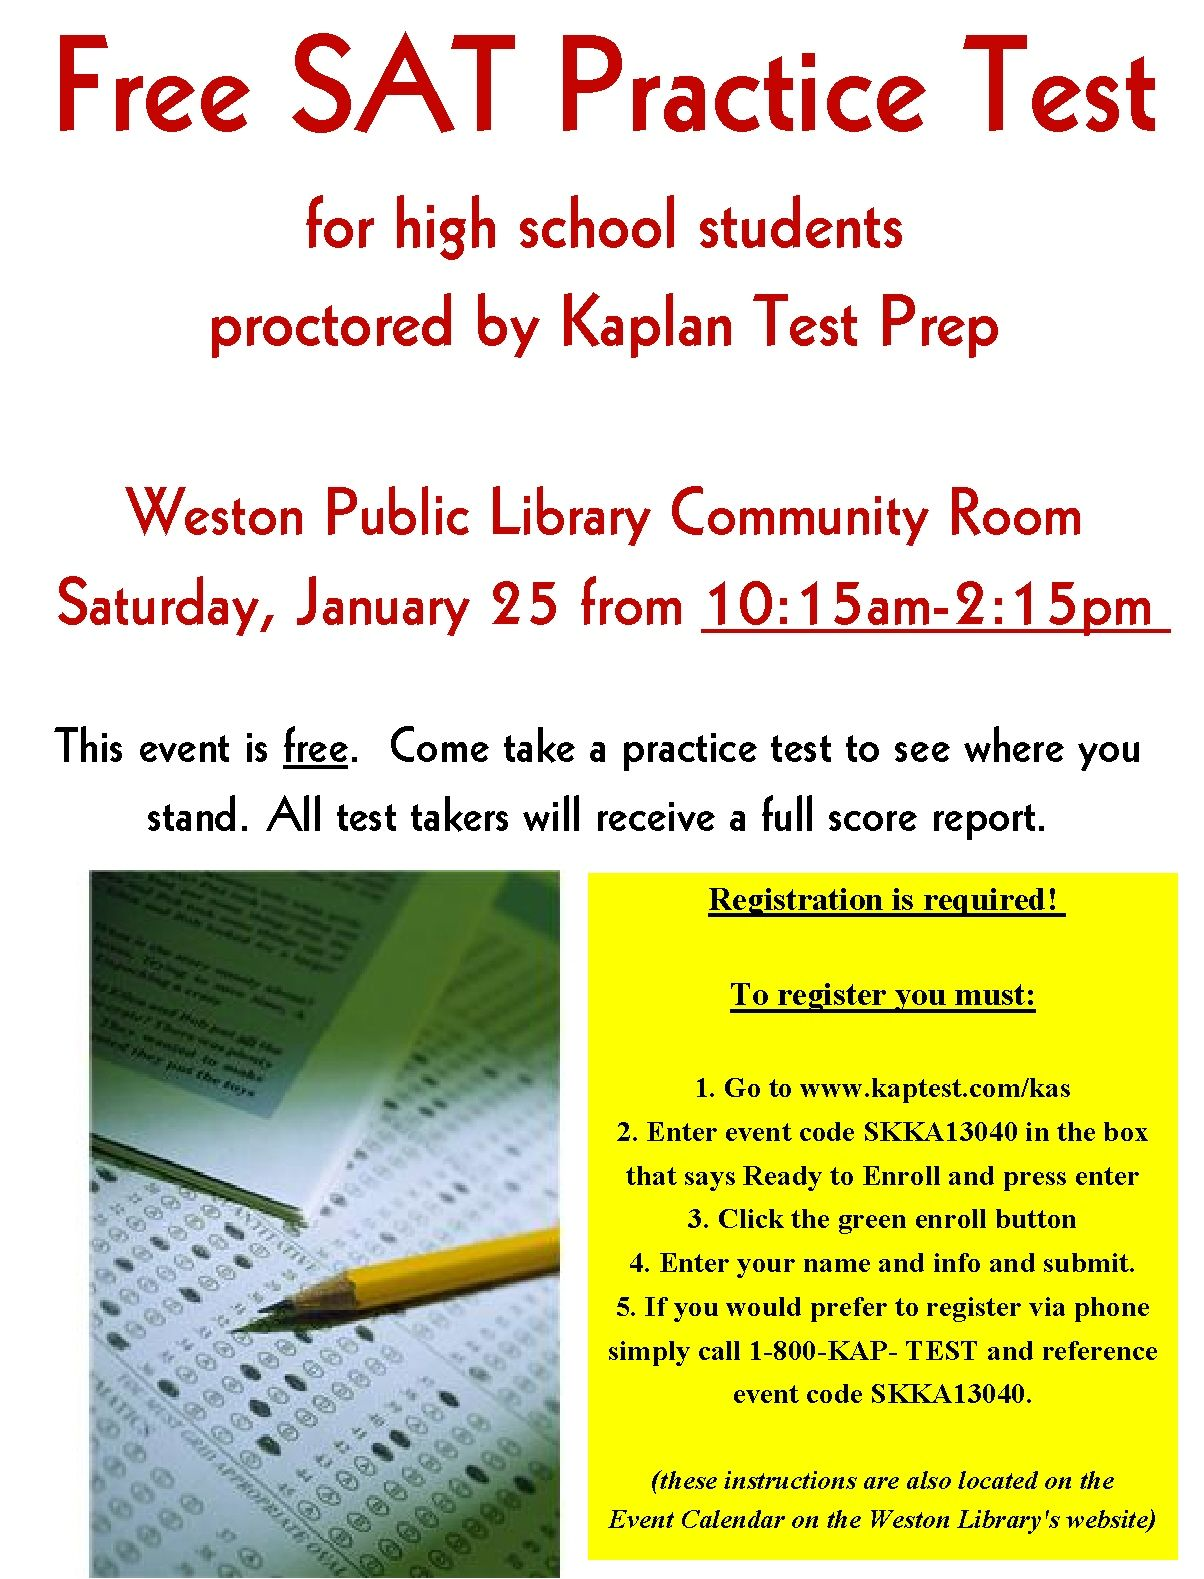 Free SAT Practice Test | Library Events & Displays | Pinterest ...